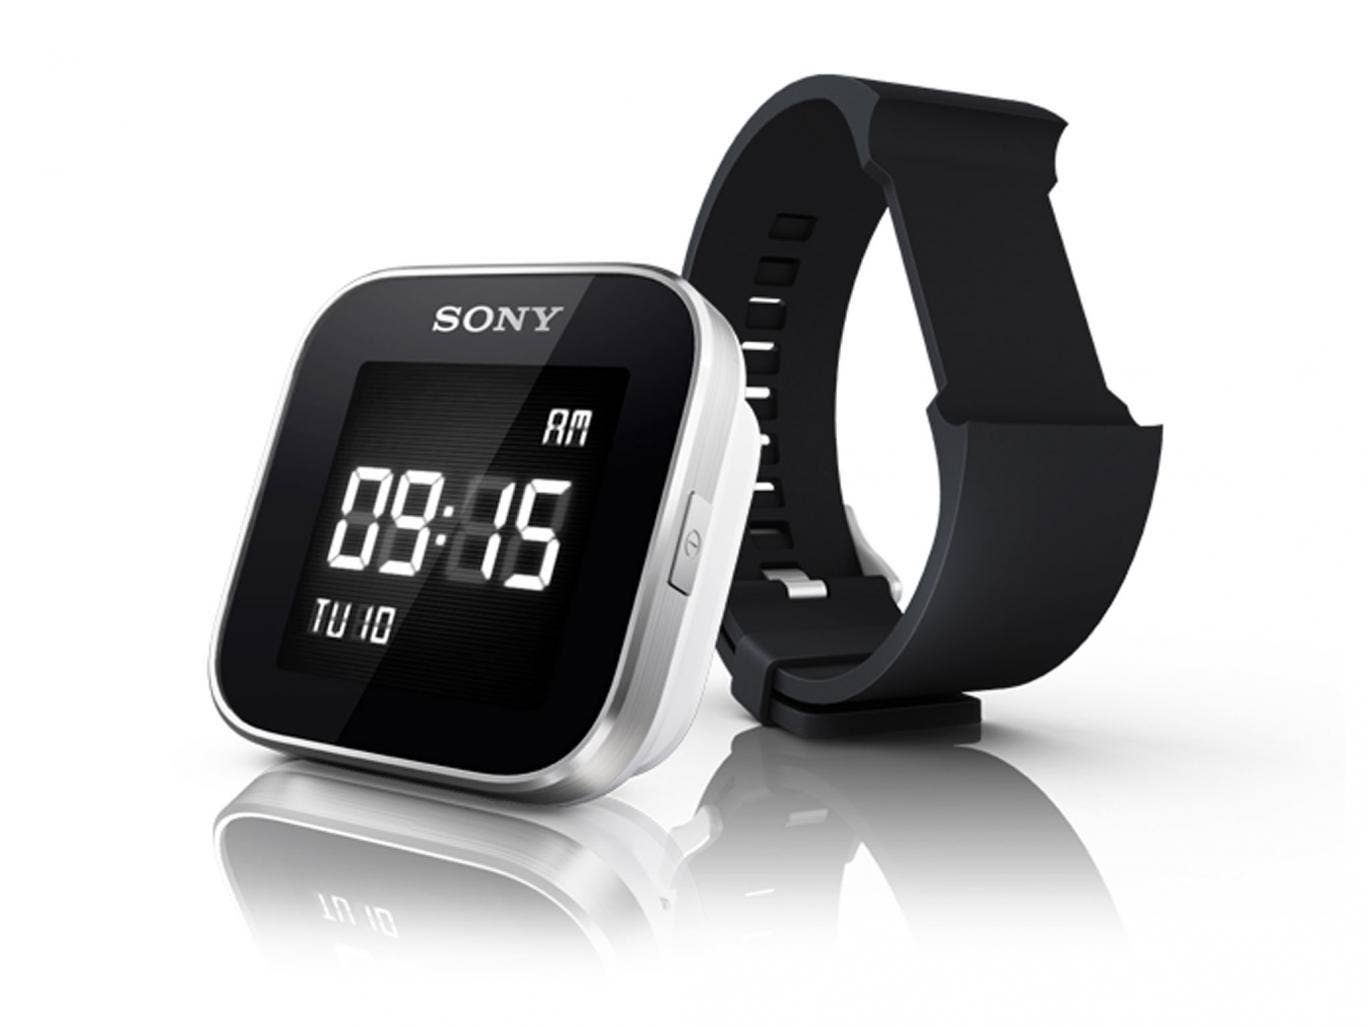 Sony already has a product on the market - the SmartWatch 2